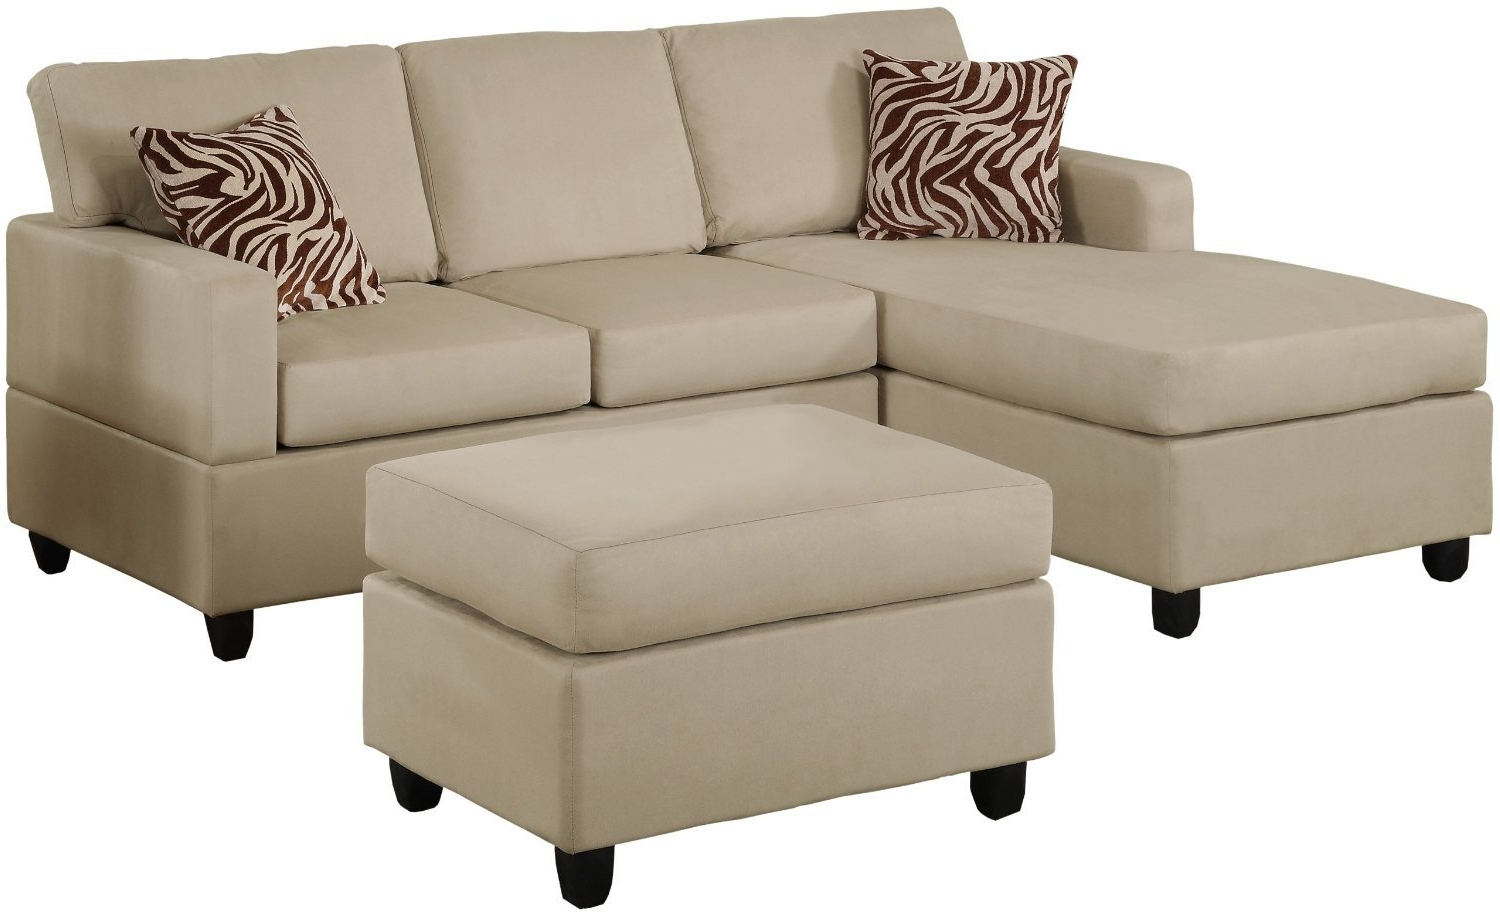 Sofa : Closeout Sofas Stimulating Closeout Leather Sofas Pertaining To Newest Closeout Sofas (View 14 of 20)